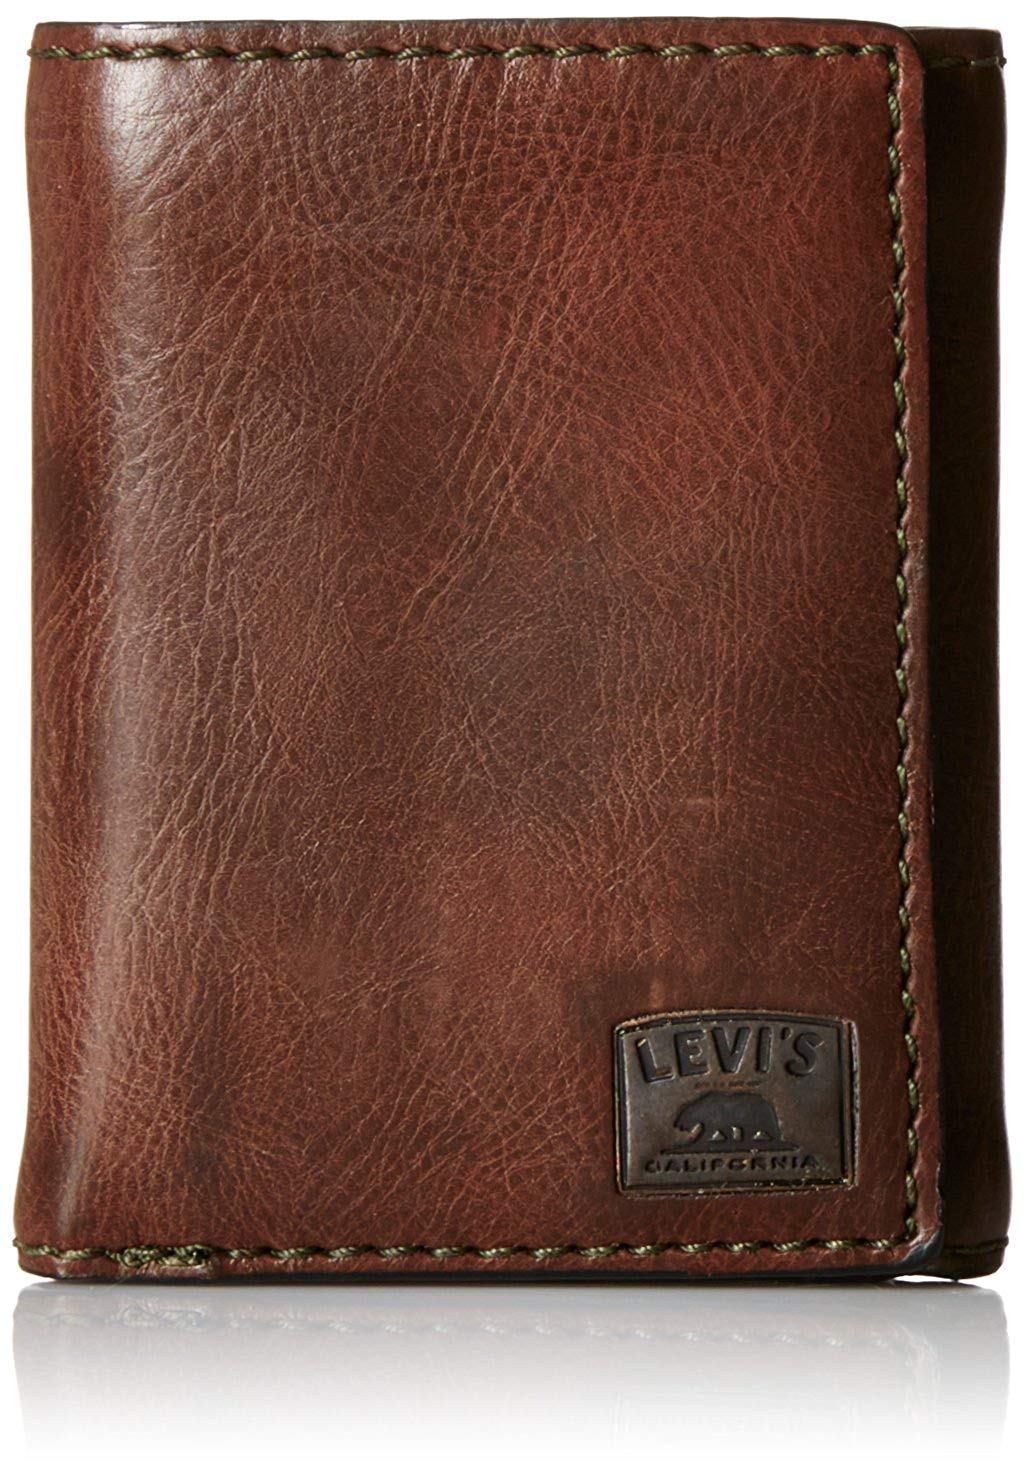 13th wedding anniversary gift ideas - Leather wallet for husband - Levi's Men's Trifold Wallet